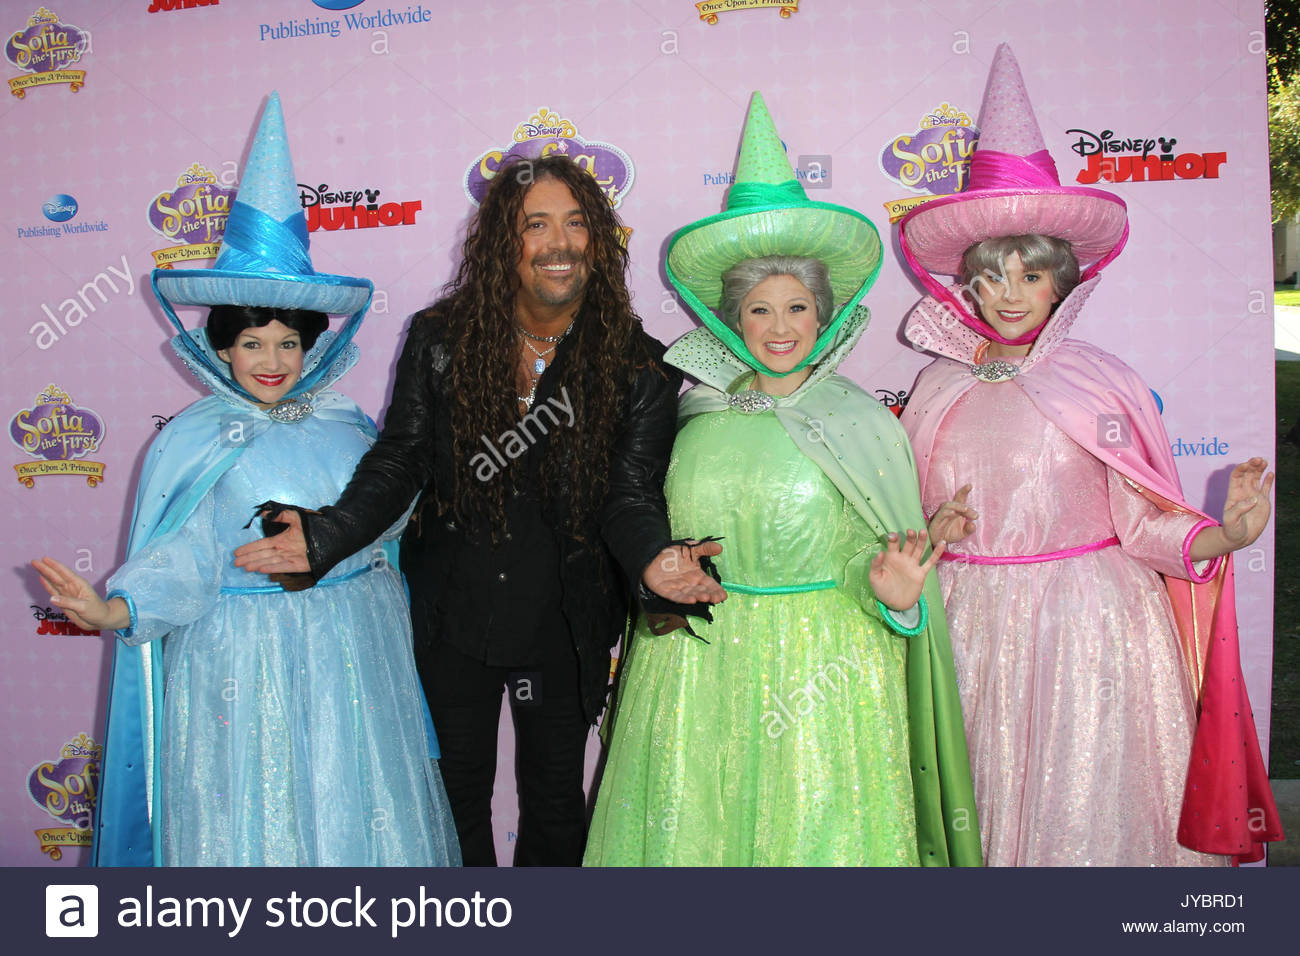 disney channel presents the movie premiere and storybook launch for disney juniors sofia the first once upon a princess premiere at walt disney studios